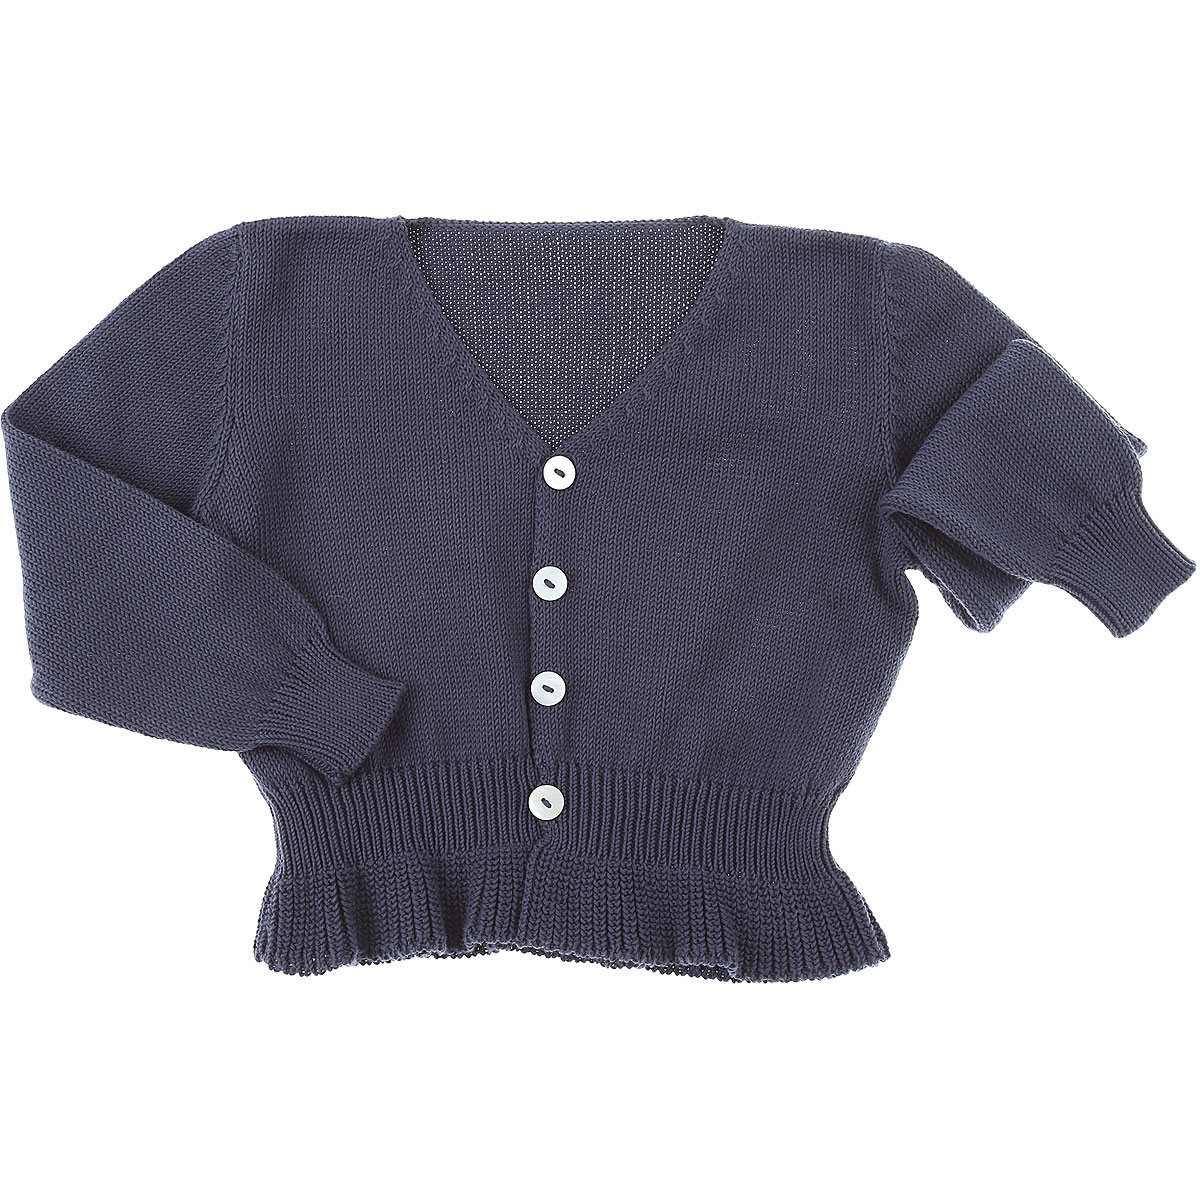 Le Nouveau Ne Baby Sweaters for Girls On Sale in Outlet, Blue, Cotton, 2019, 3Y 4Y